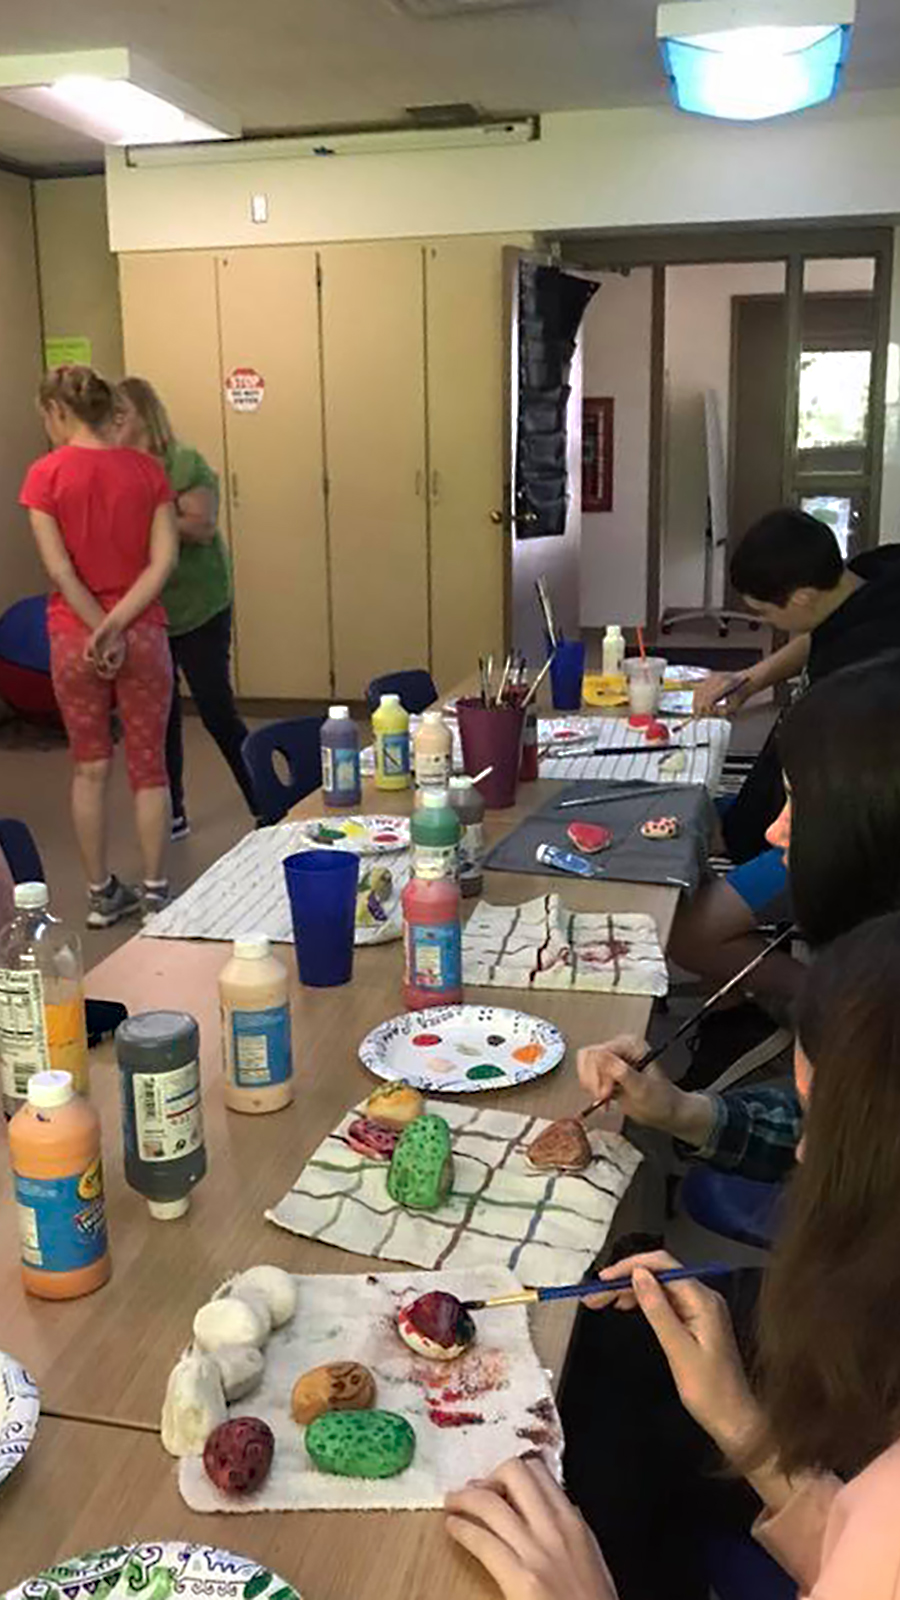 Students sit at a table painting inside a classroom